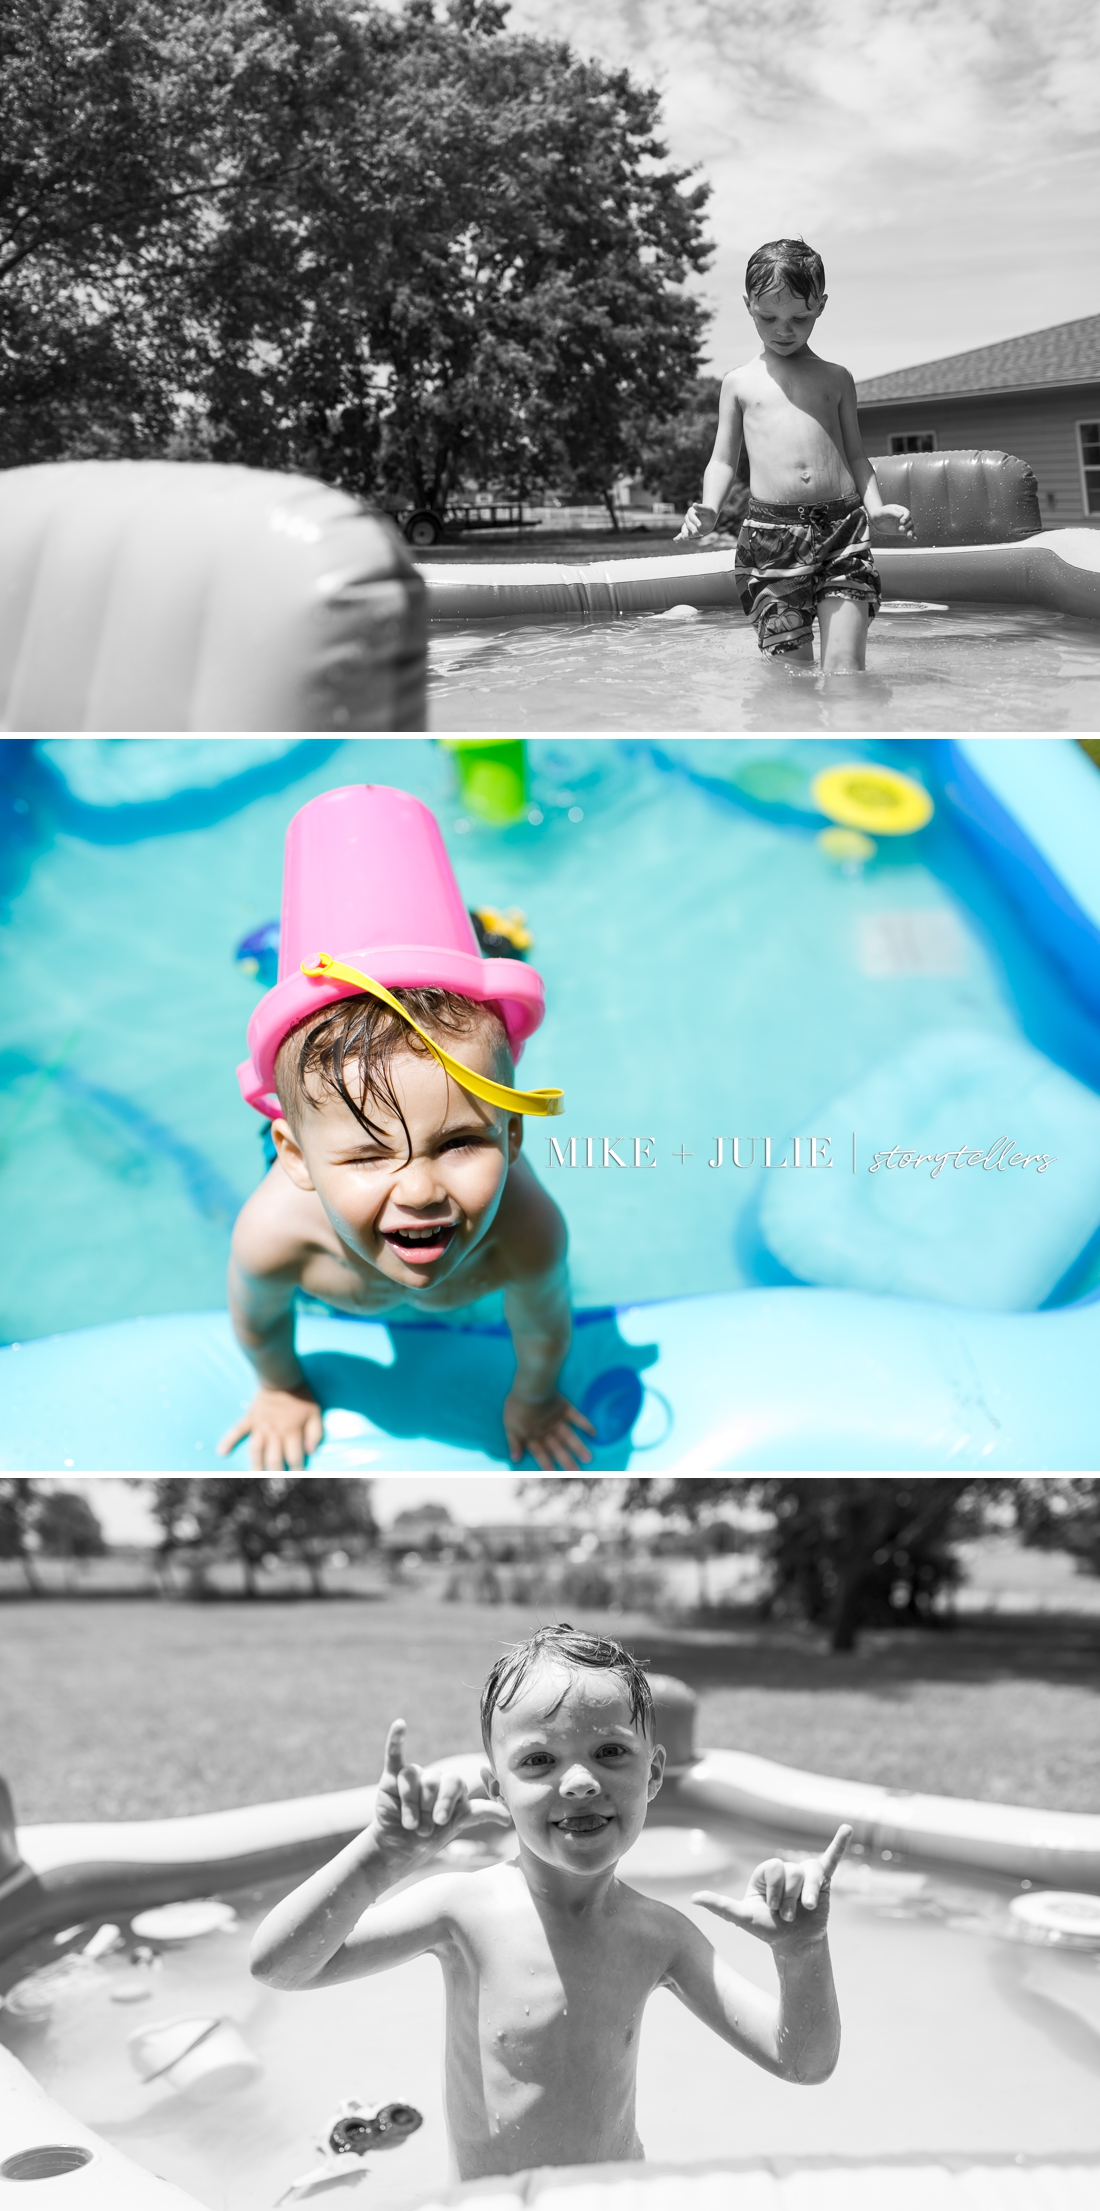 Kansas City UNportrait Experience document fun of childhood at pool picture